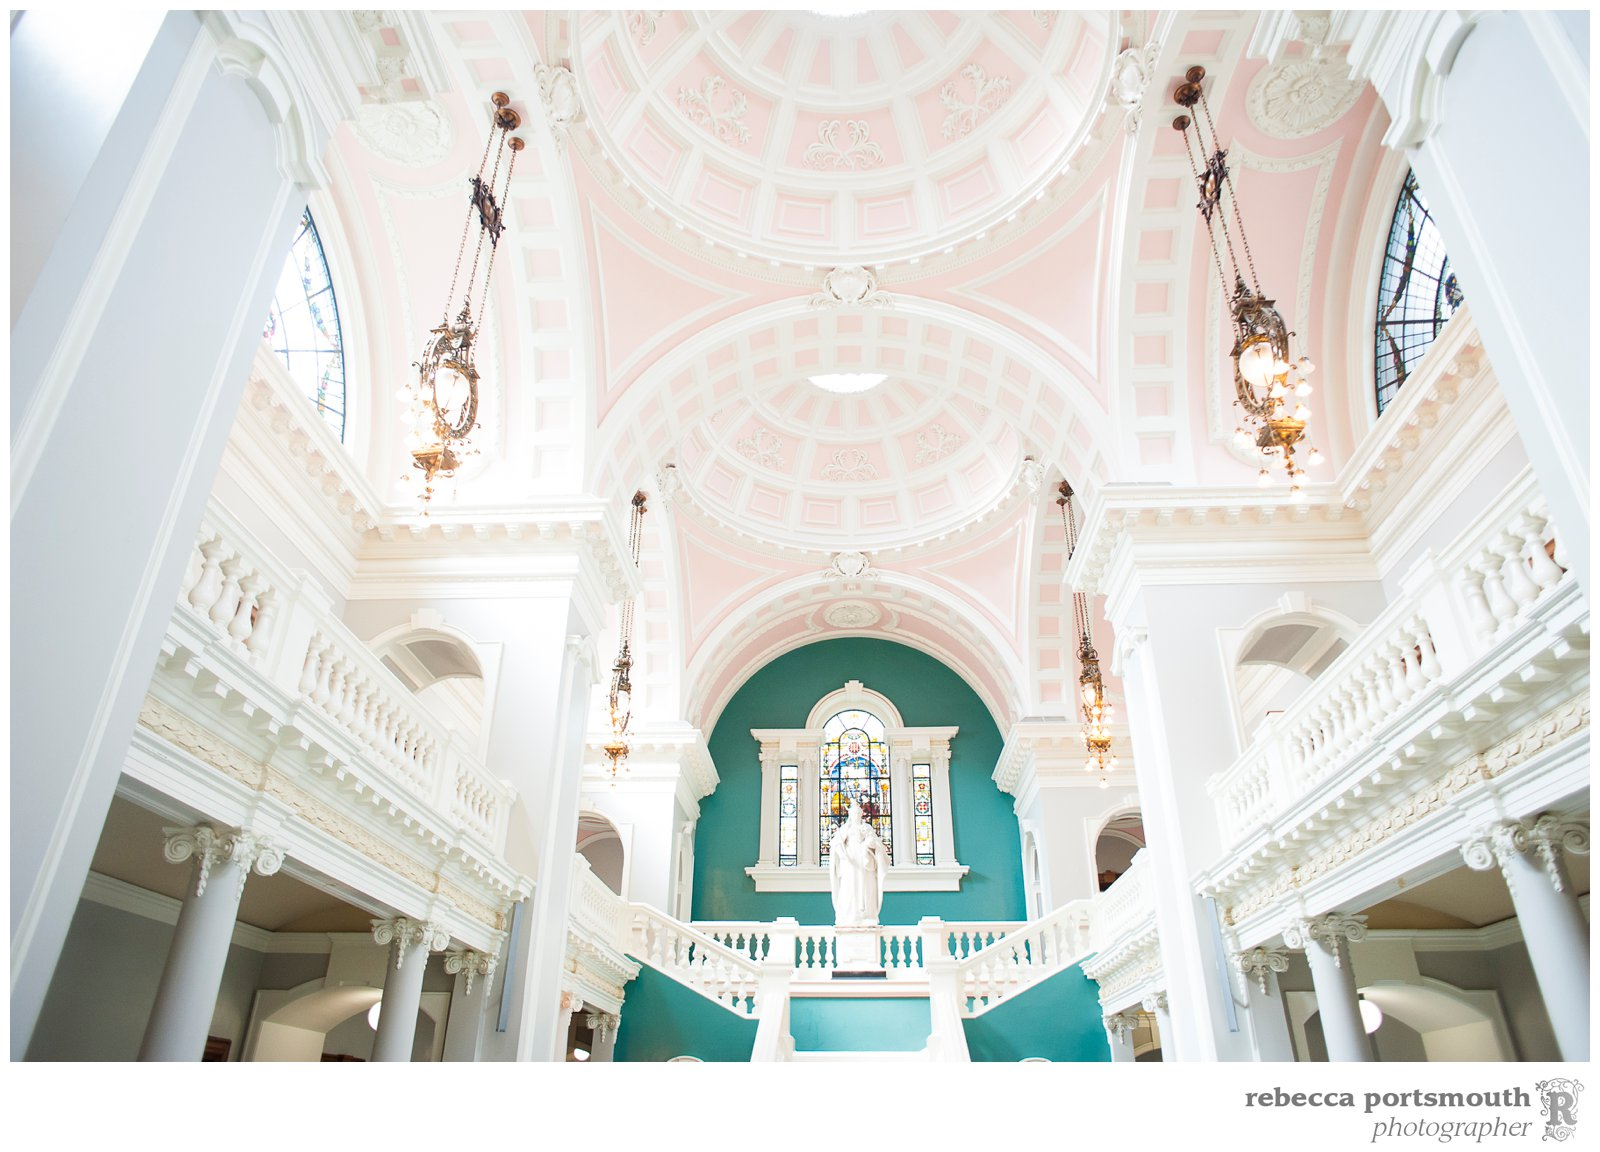 The pink and white painted ceiling of Victoria Hall in Woolwich, SE18, London, home of the Royal Borough of Greenwich and where civil wedding ceremonies take place.